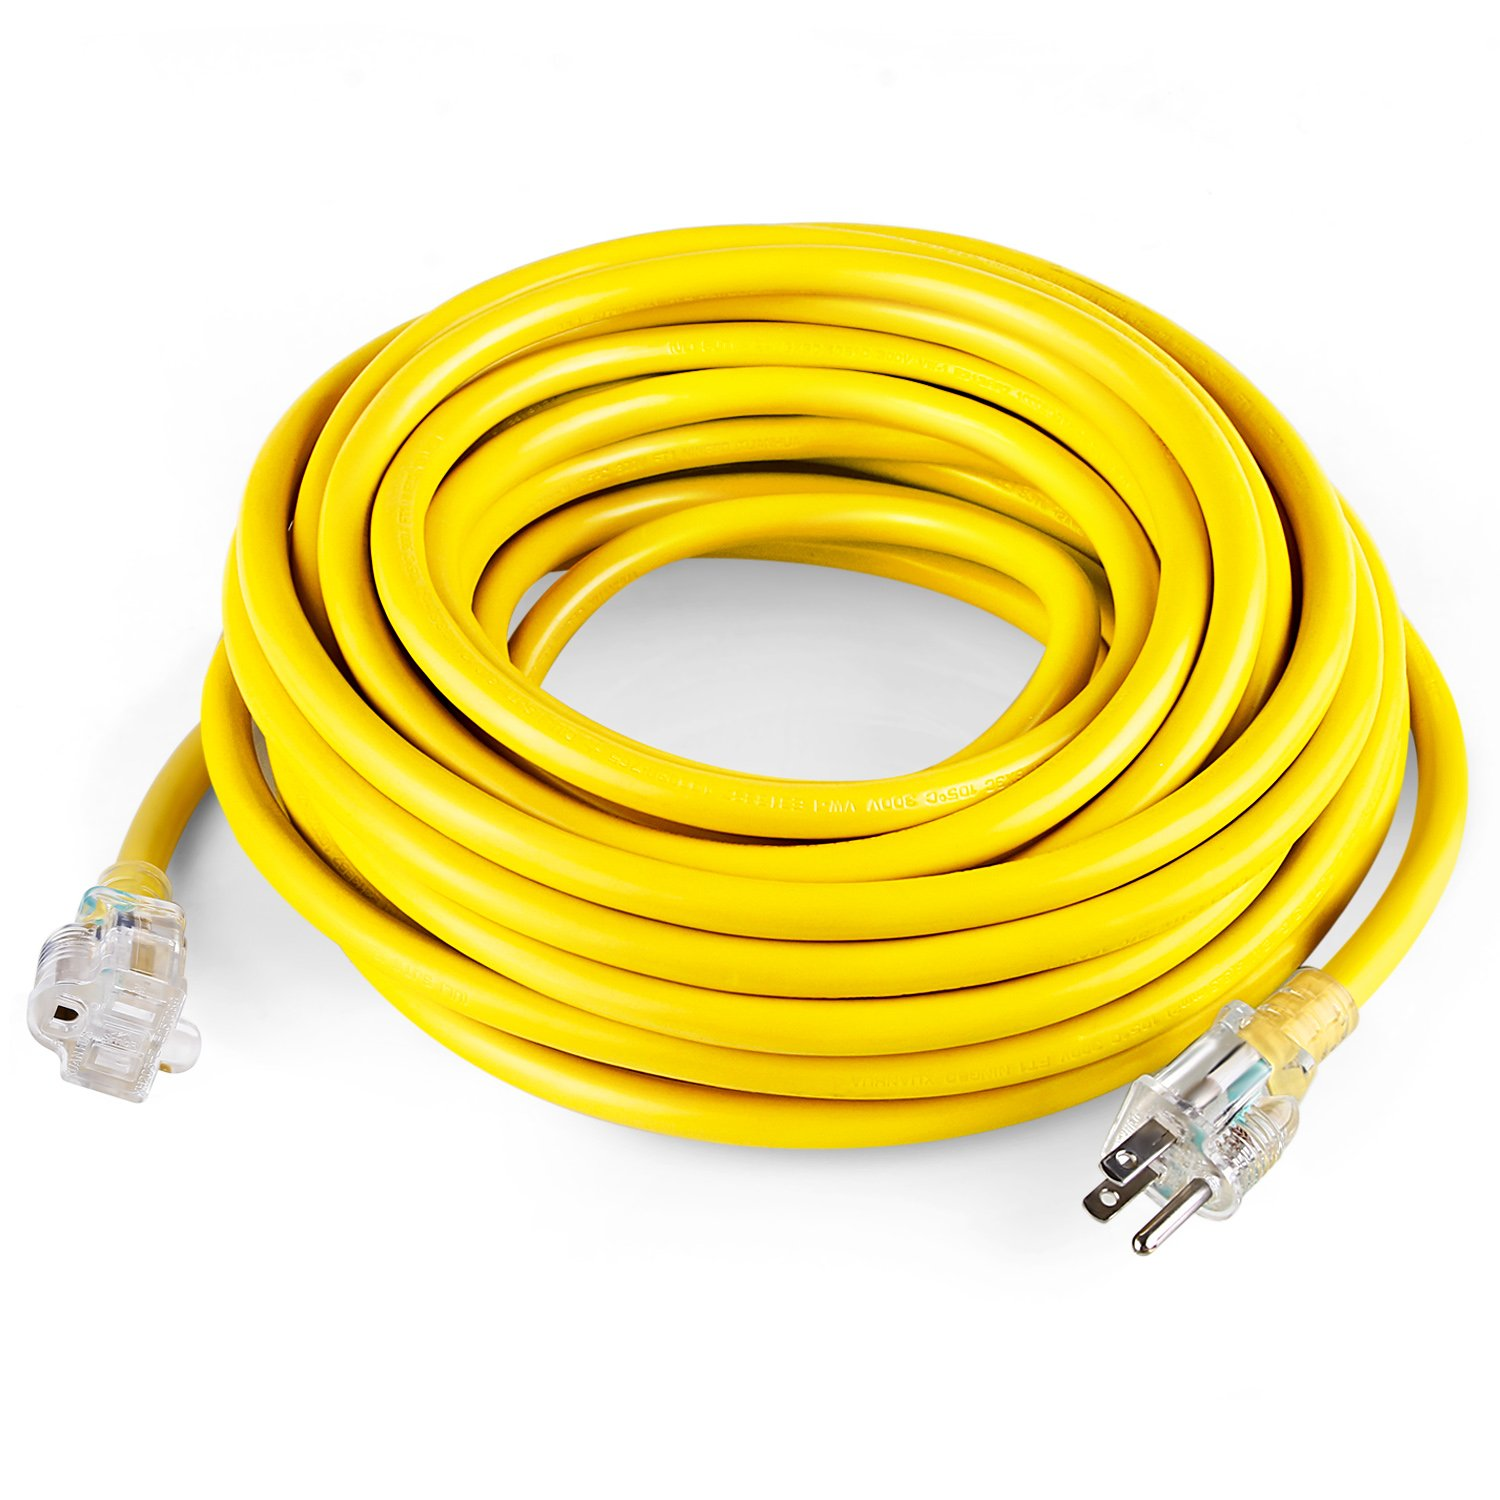 SIMBR 12/3 50 FT Extension Cord Outdoor, Heavy Duty Electrical Cord 12 Gauge Lighted, 15 Amps, 1875 Watts, UL Listed, SJTW, Yellow (50 ft)